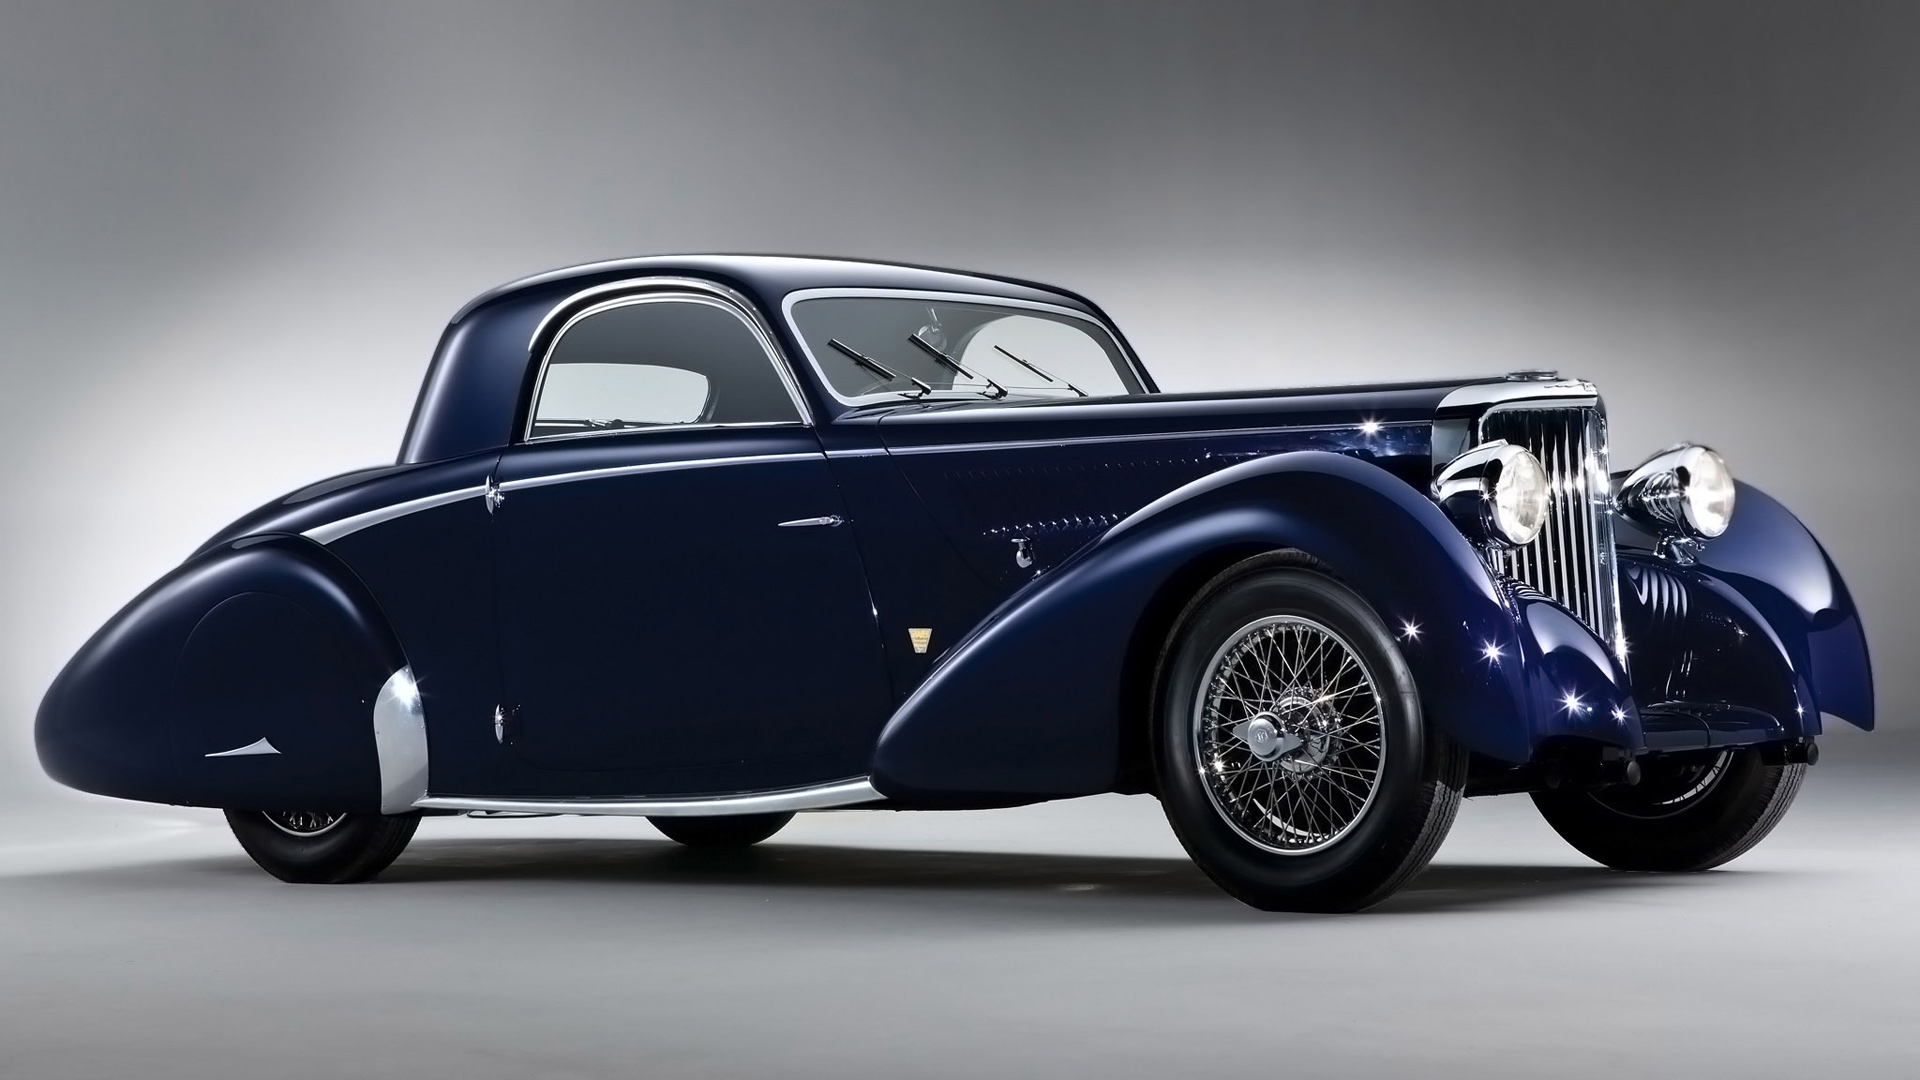 Cars Classic Wallpapers Old Cars Wallpapers Desktop Backgrounds 1920x1080